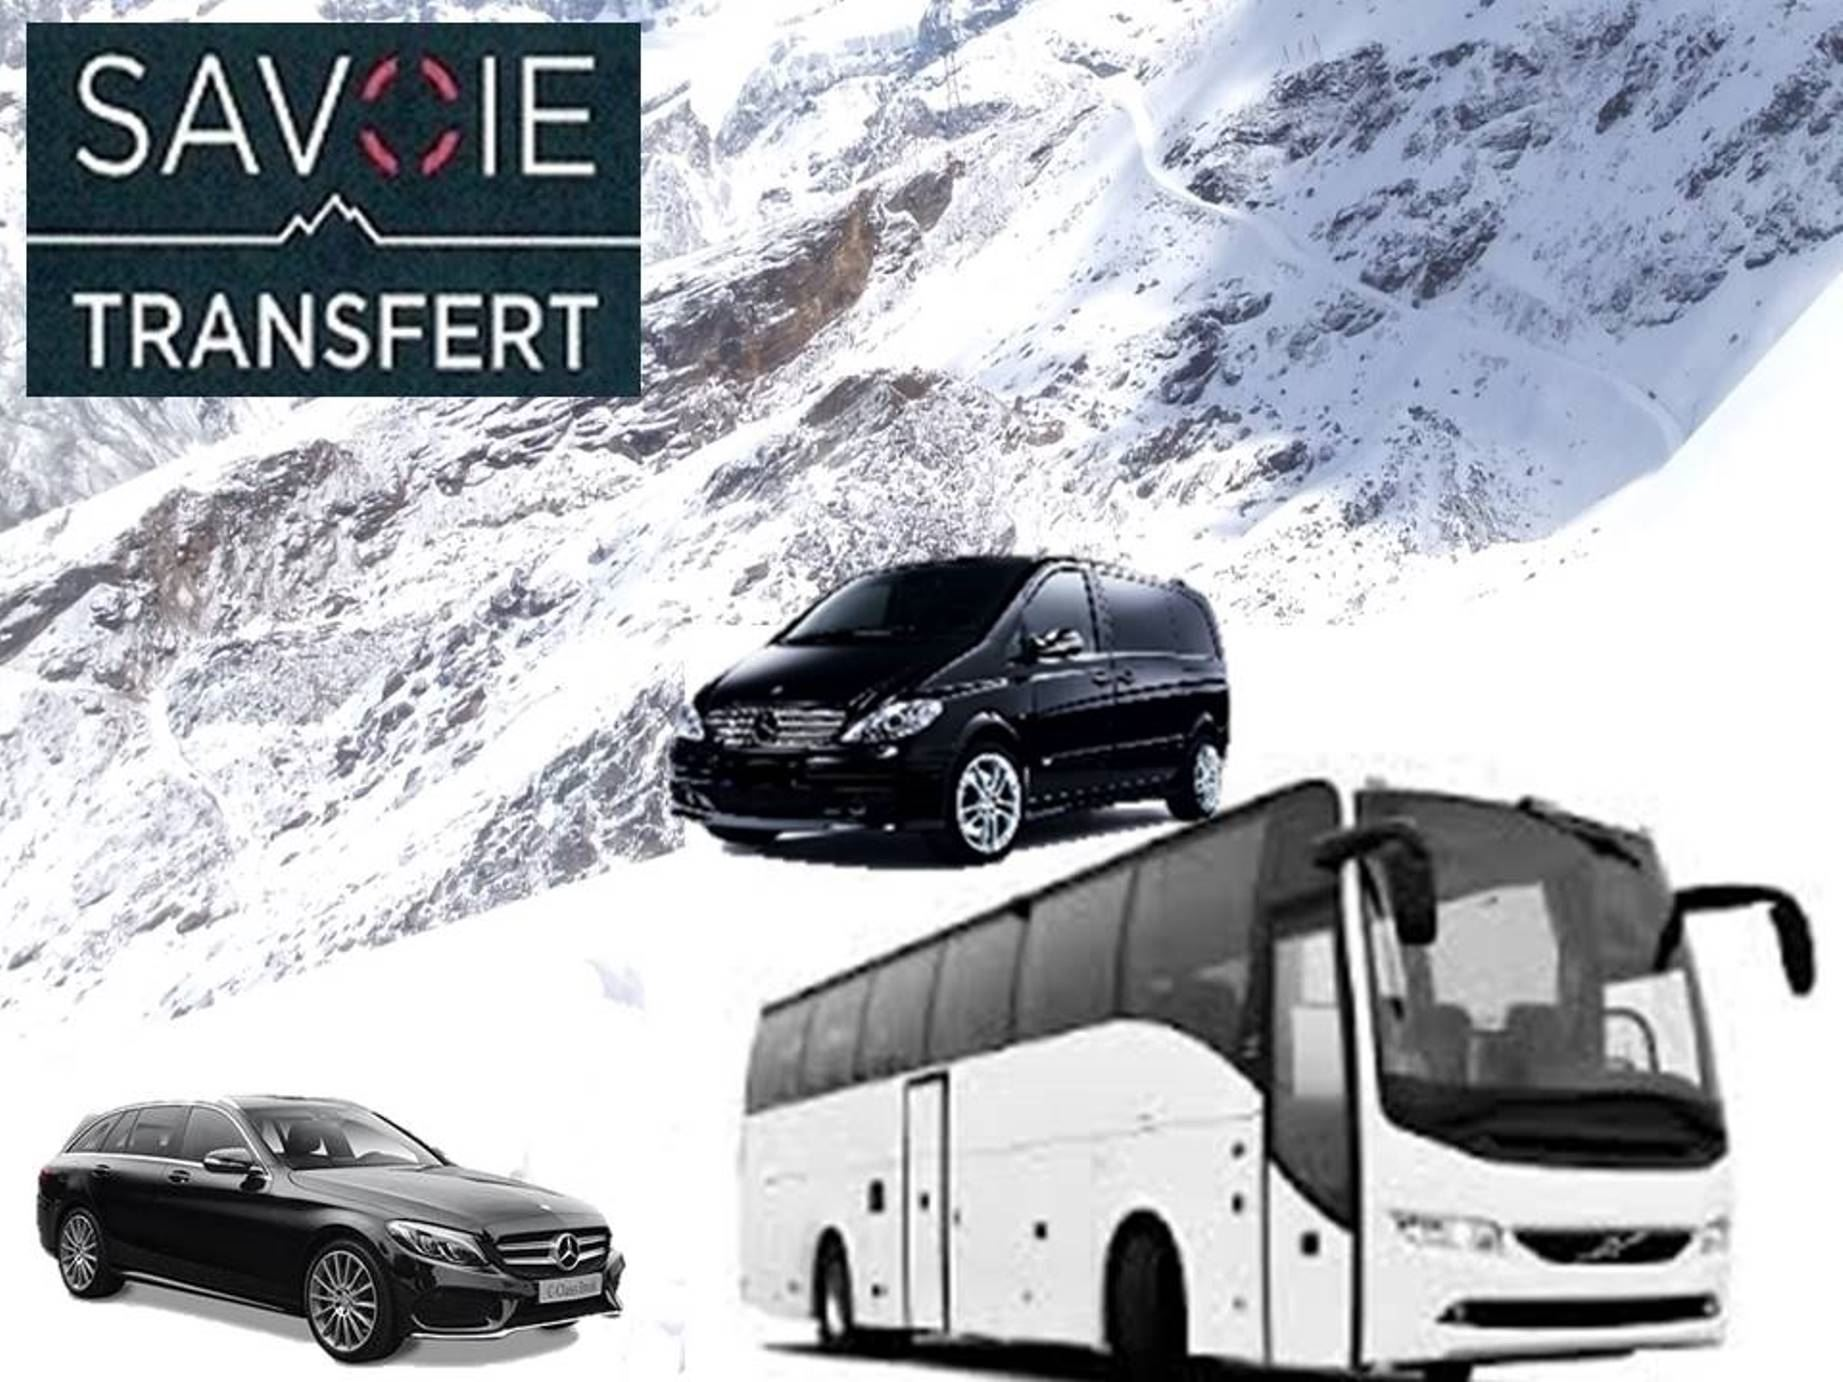 PRIVATE TRANSFER from MOUTIERS STATION ROUND TRIPwith VAL THORENS TRANSFERT